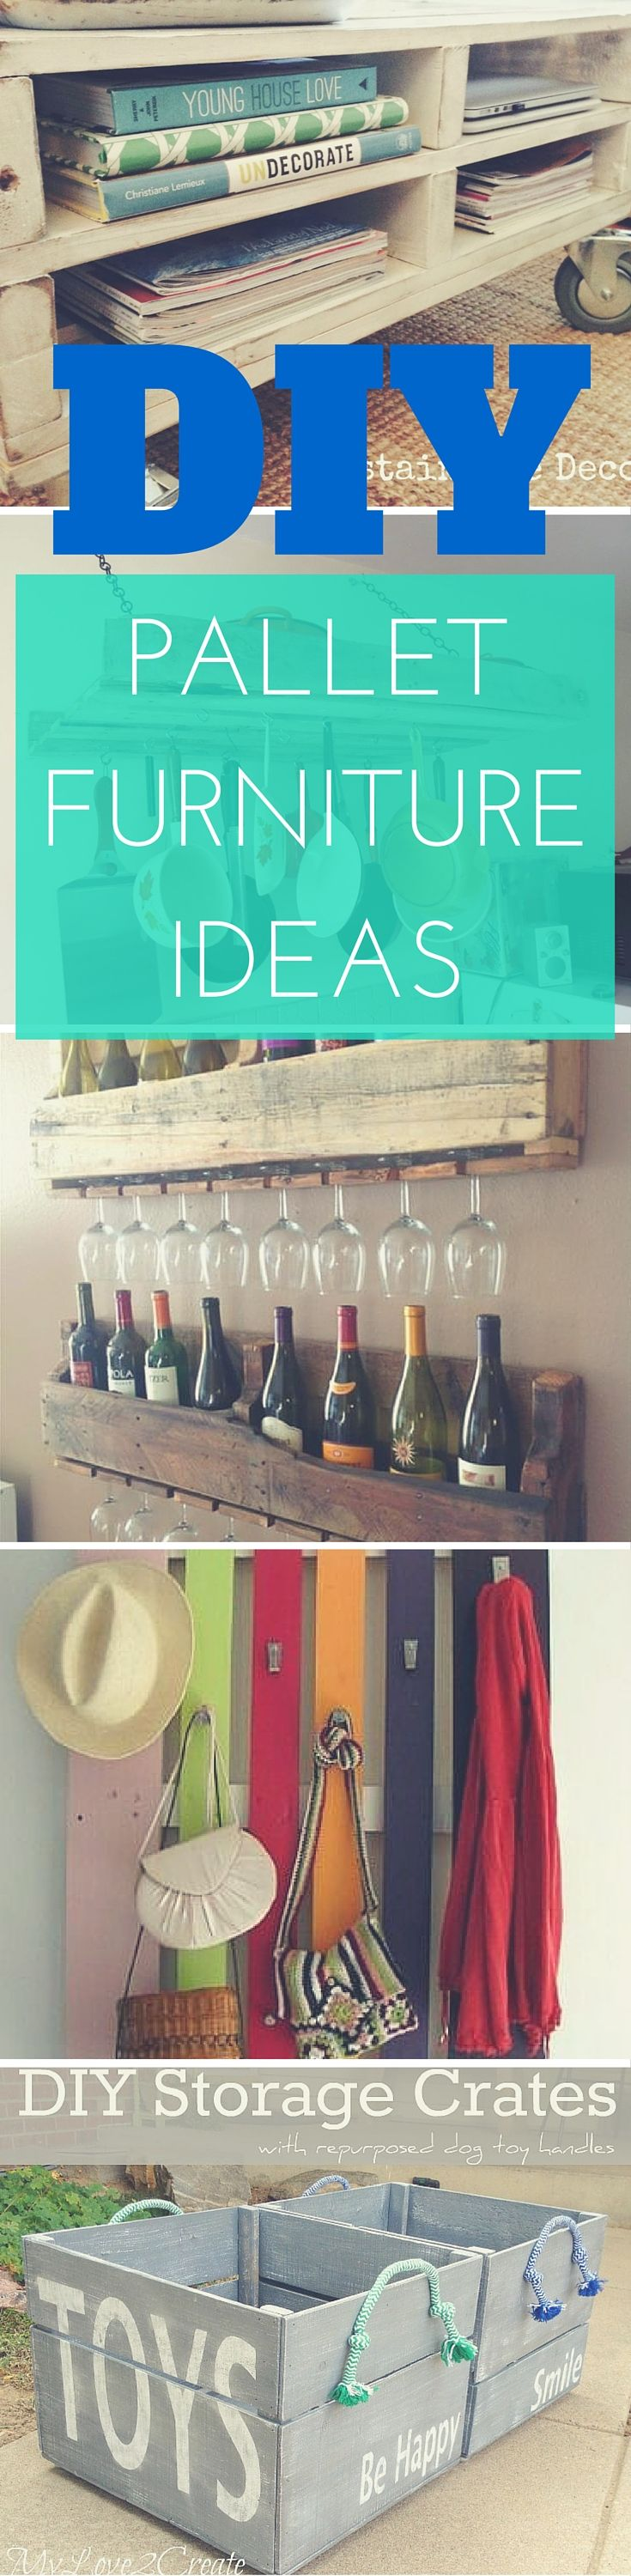 27 Simple DIY Pallet Furniture Ideas and DIY Pallet Projects